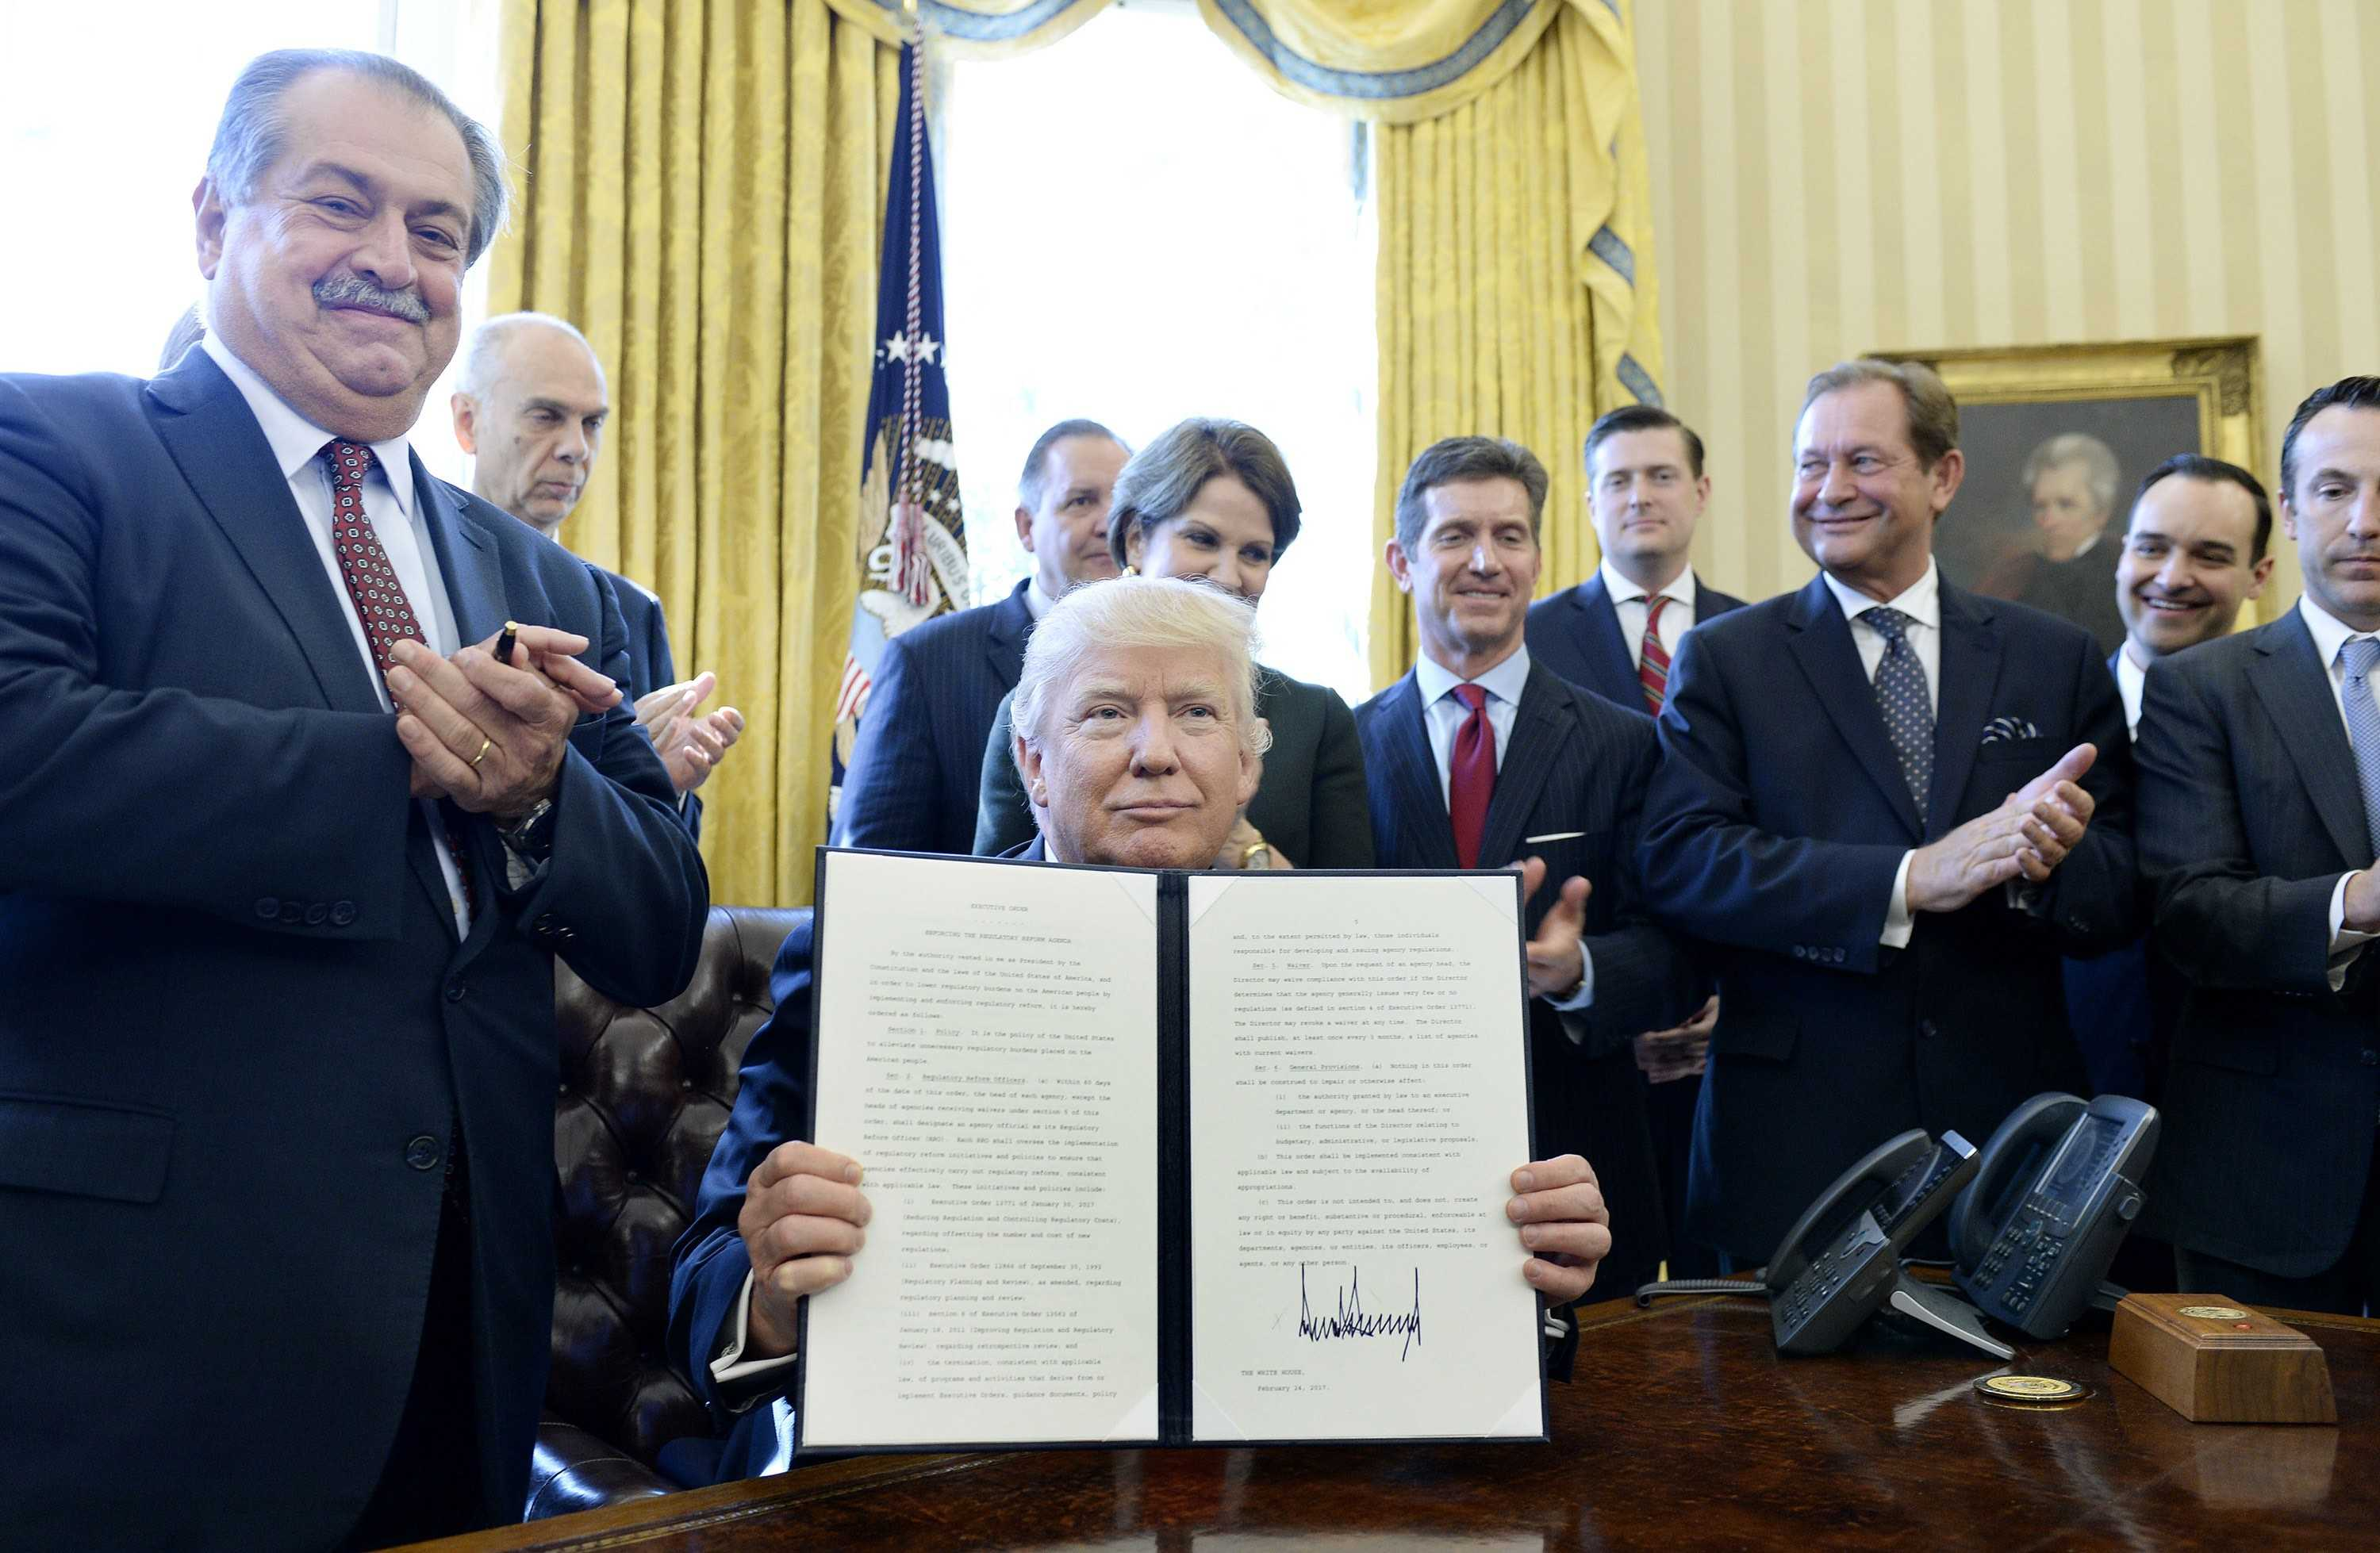 U.S. President Donald Trump, flanked by business leaders, signs an executive order establishing regulatory reform officers and task forces in US agencies in the Oval Office of the White House on Feb. 24, 2017 in Washington, D.C. (Olivier Douliery | Abaca Press)